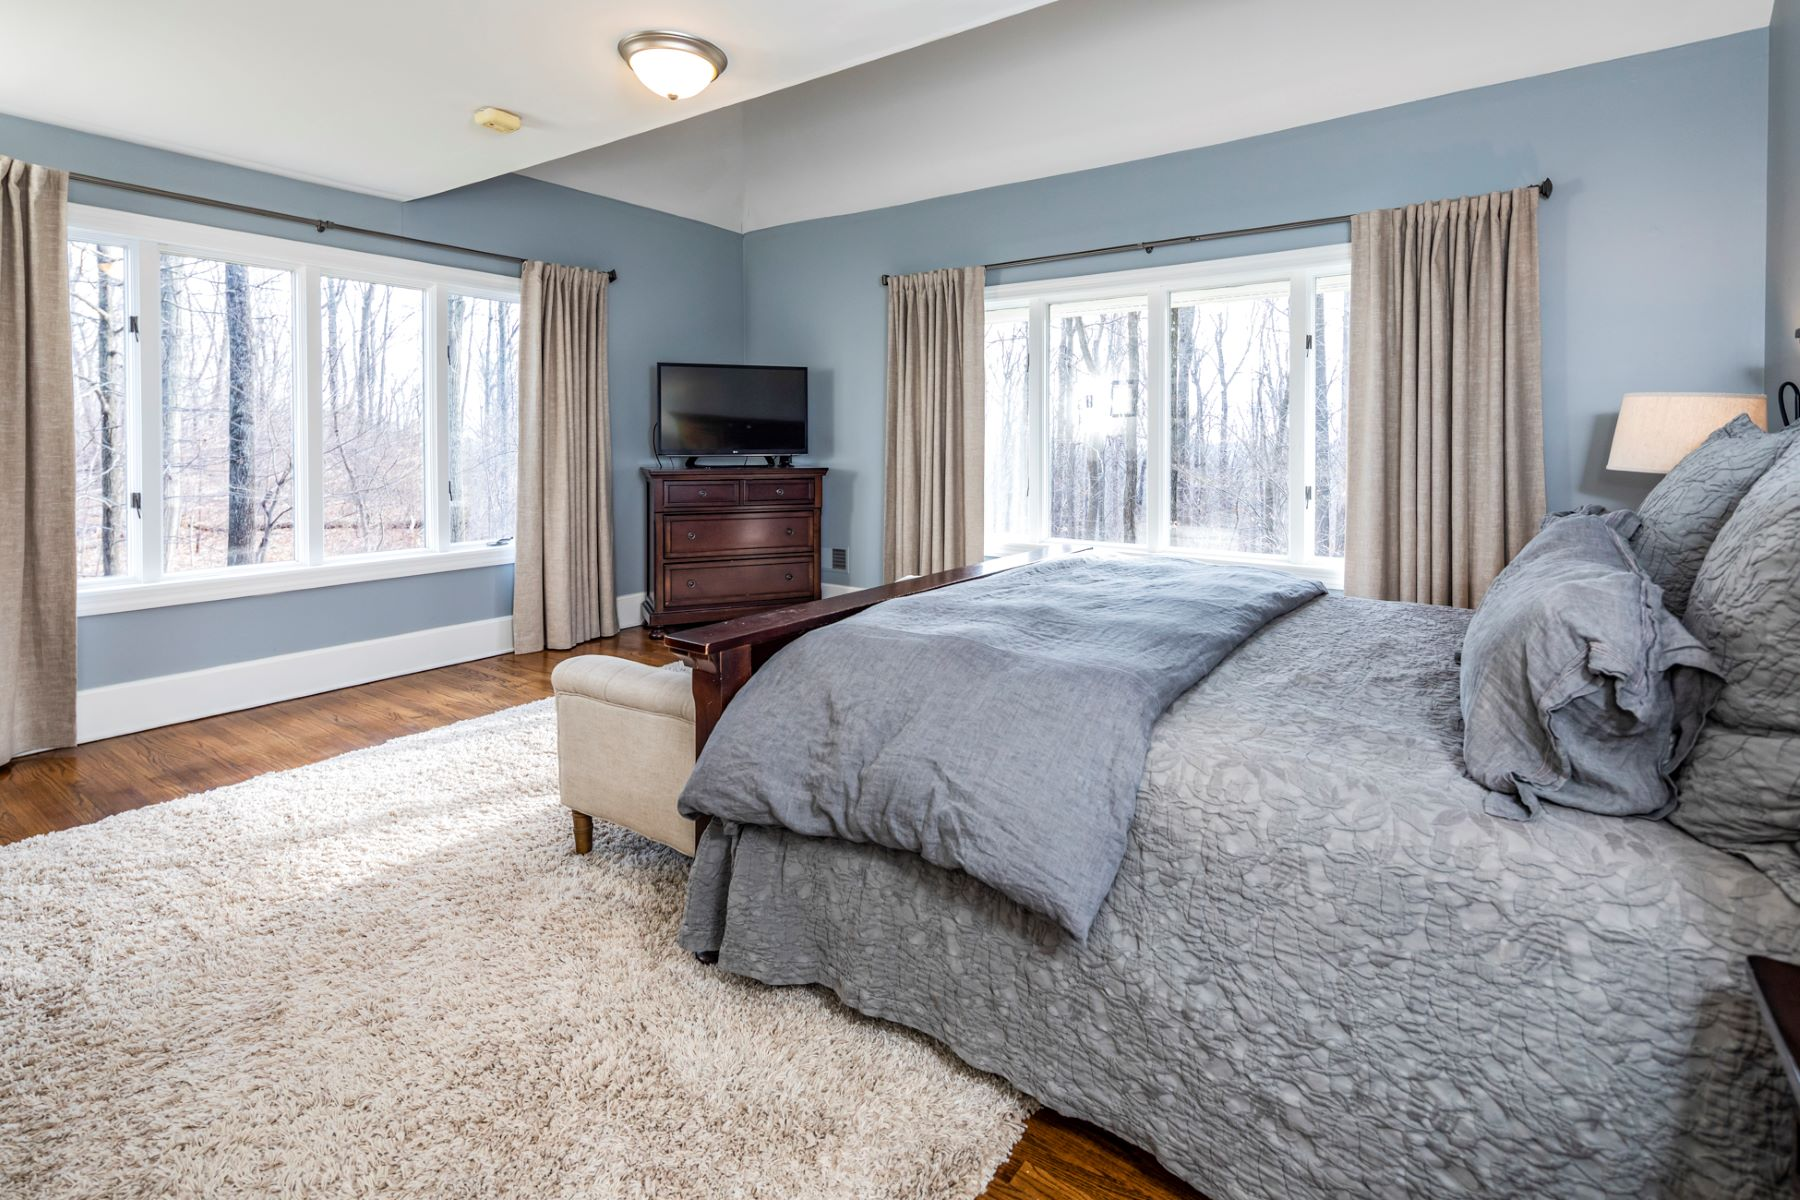 Additional photo for property listing at Free-flowing, Youthful Design 29 Crusher Road, Hopewell, New Jersey 08525 United States